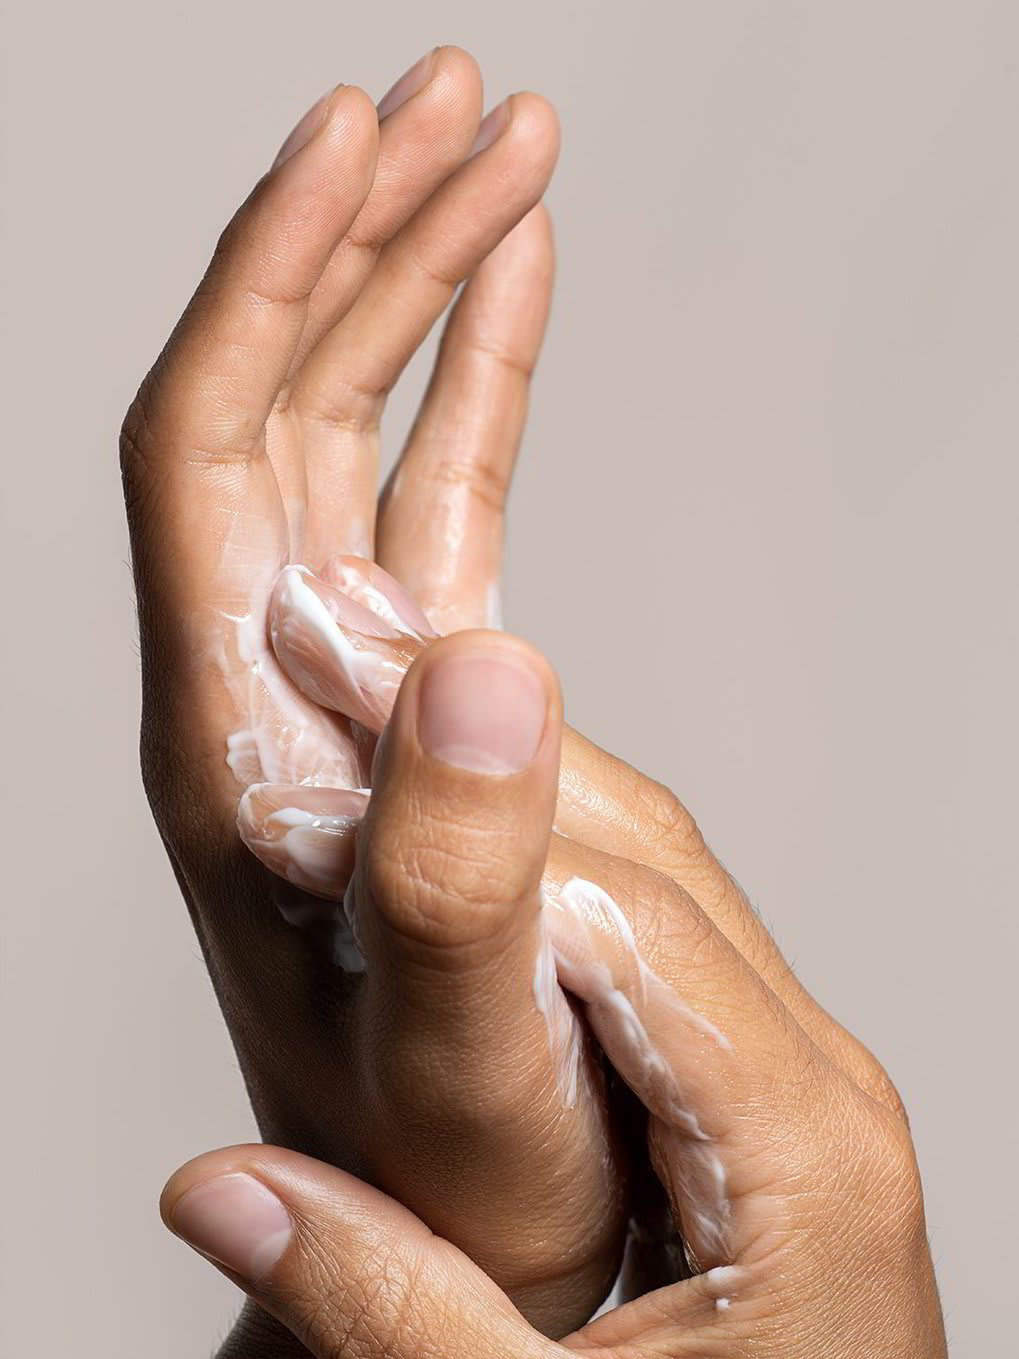 A closeup of a young man applying skin care product to his hands